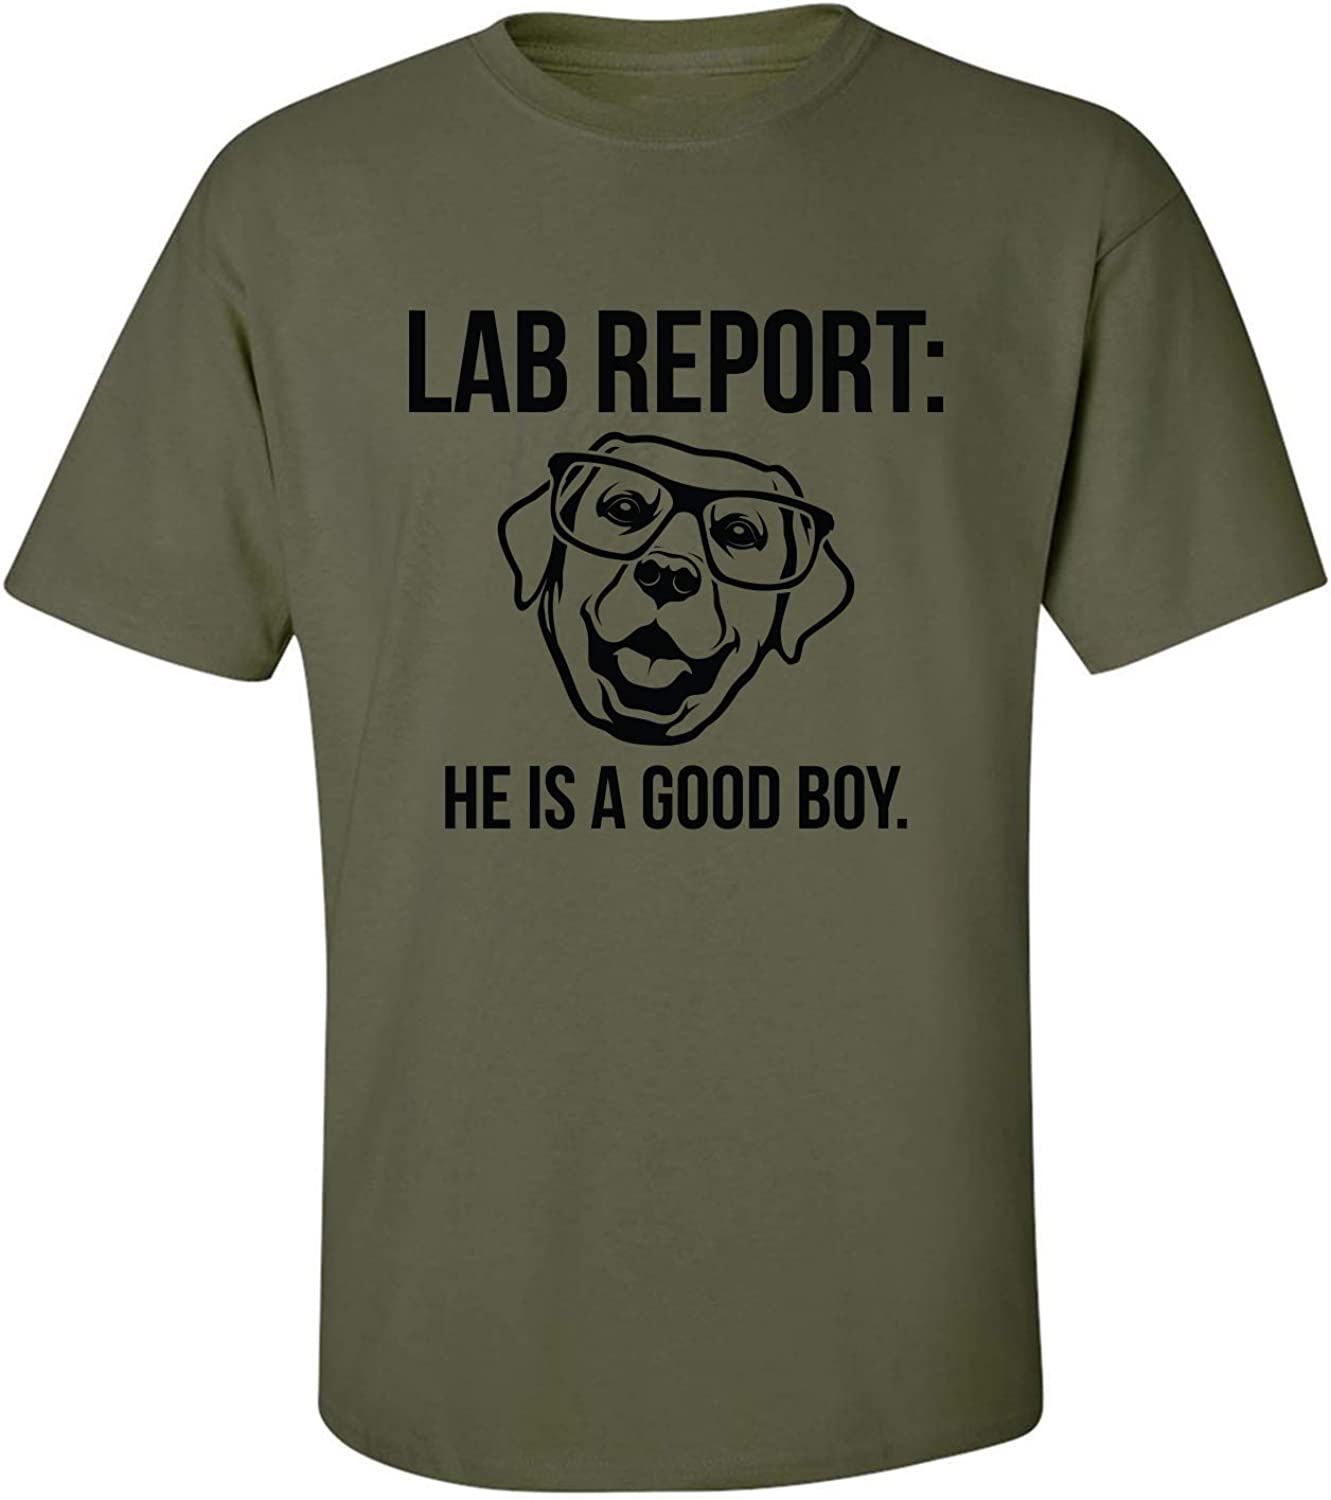 Lab Report Adult T-Shirt in Military Green - XXXXX-Large